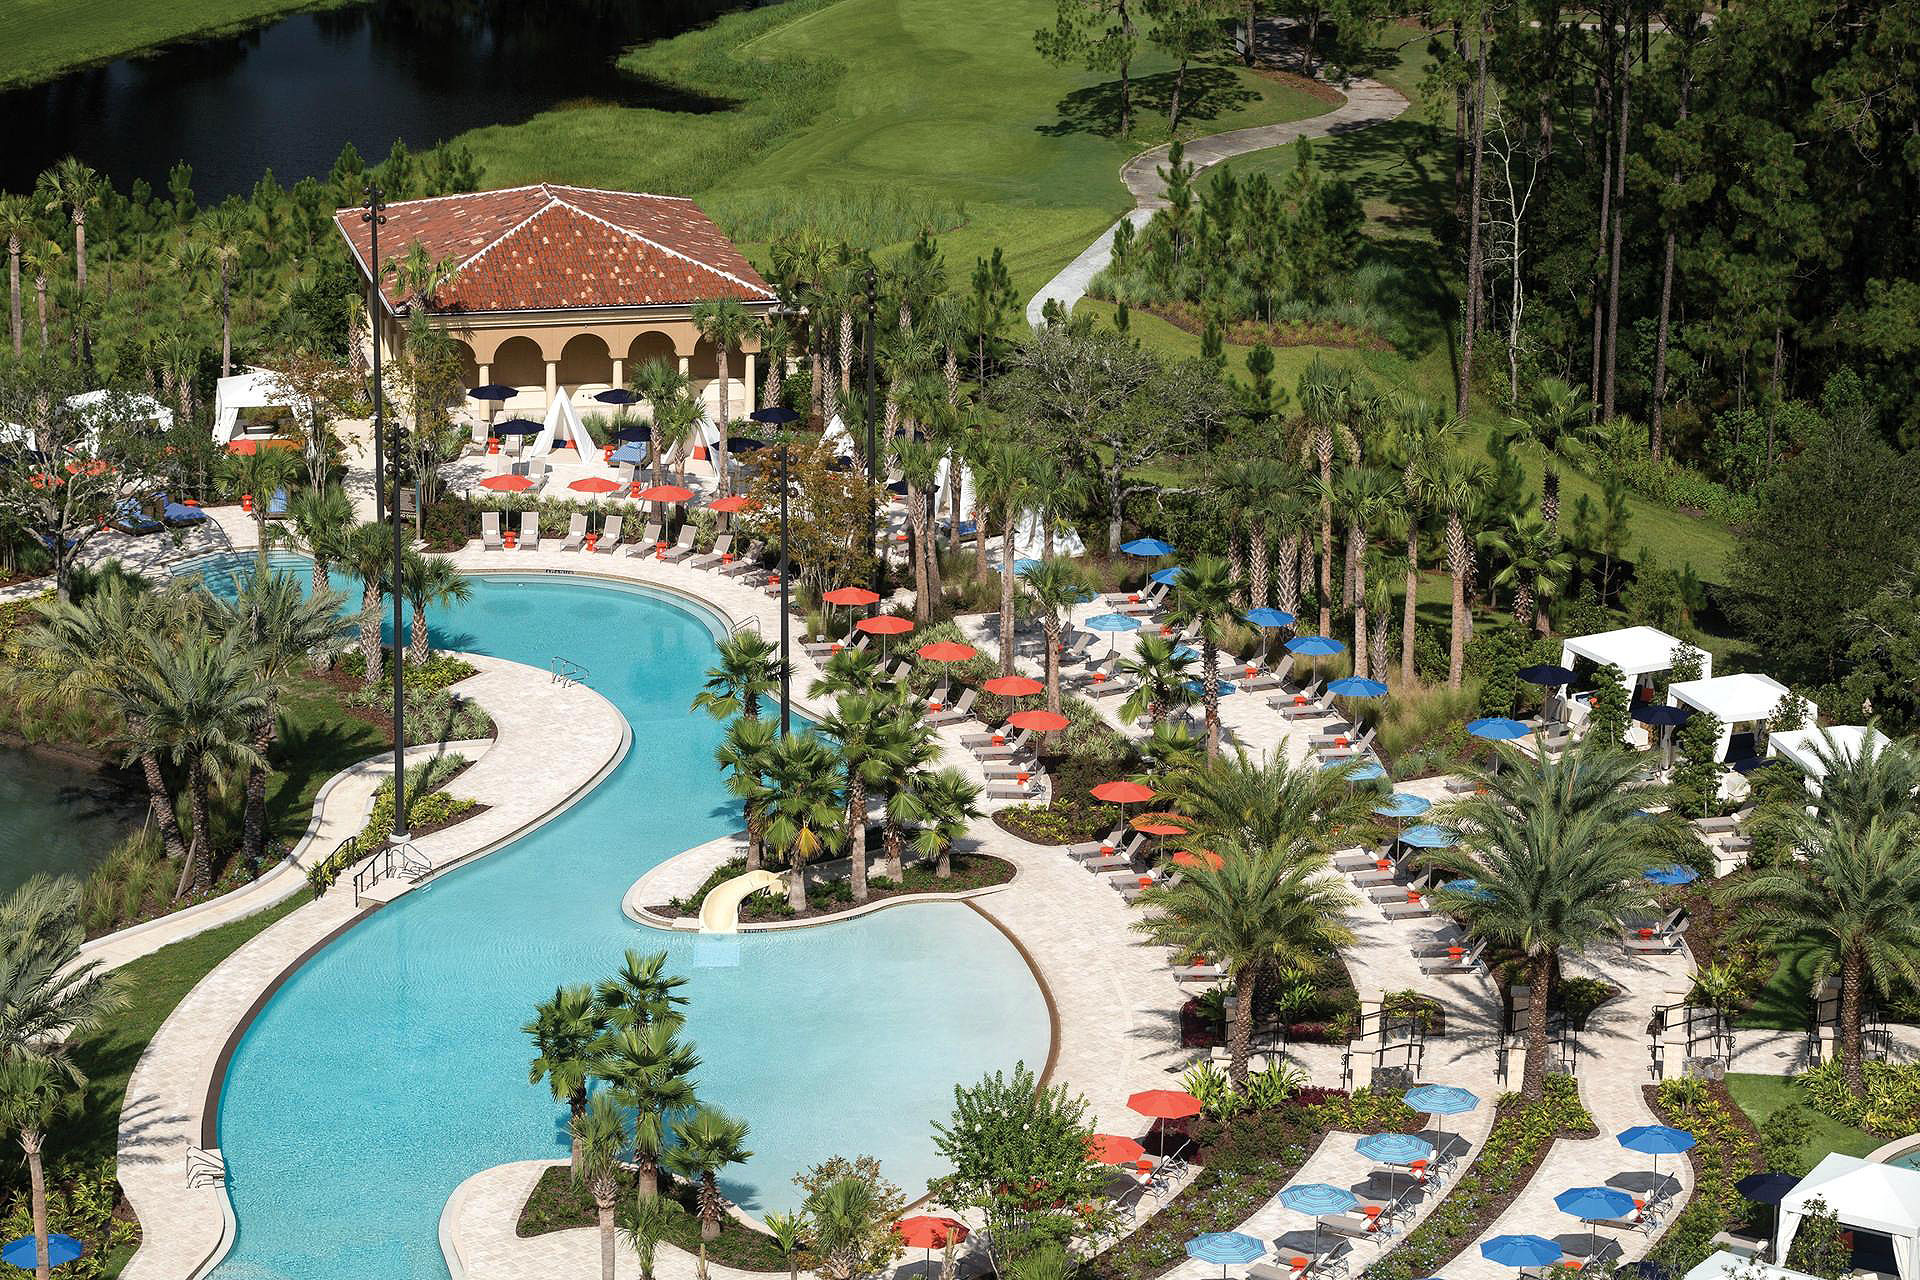 Aerial View of Four Seasons Resort Orlando at Walt Disney World; Courtesy of Four Seasons Resort Orlando at Walt Disney World